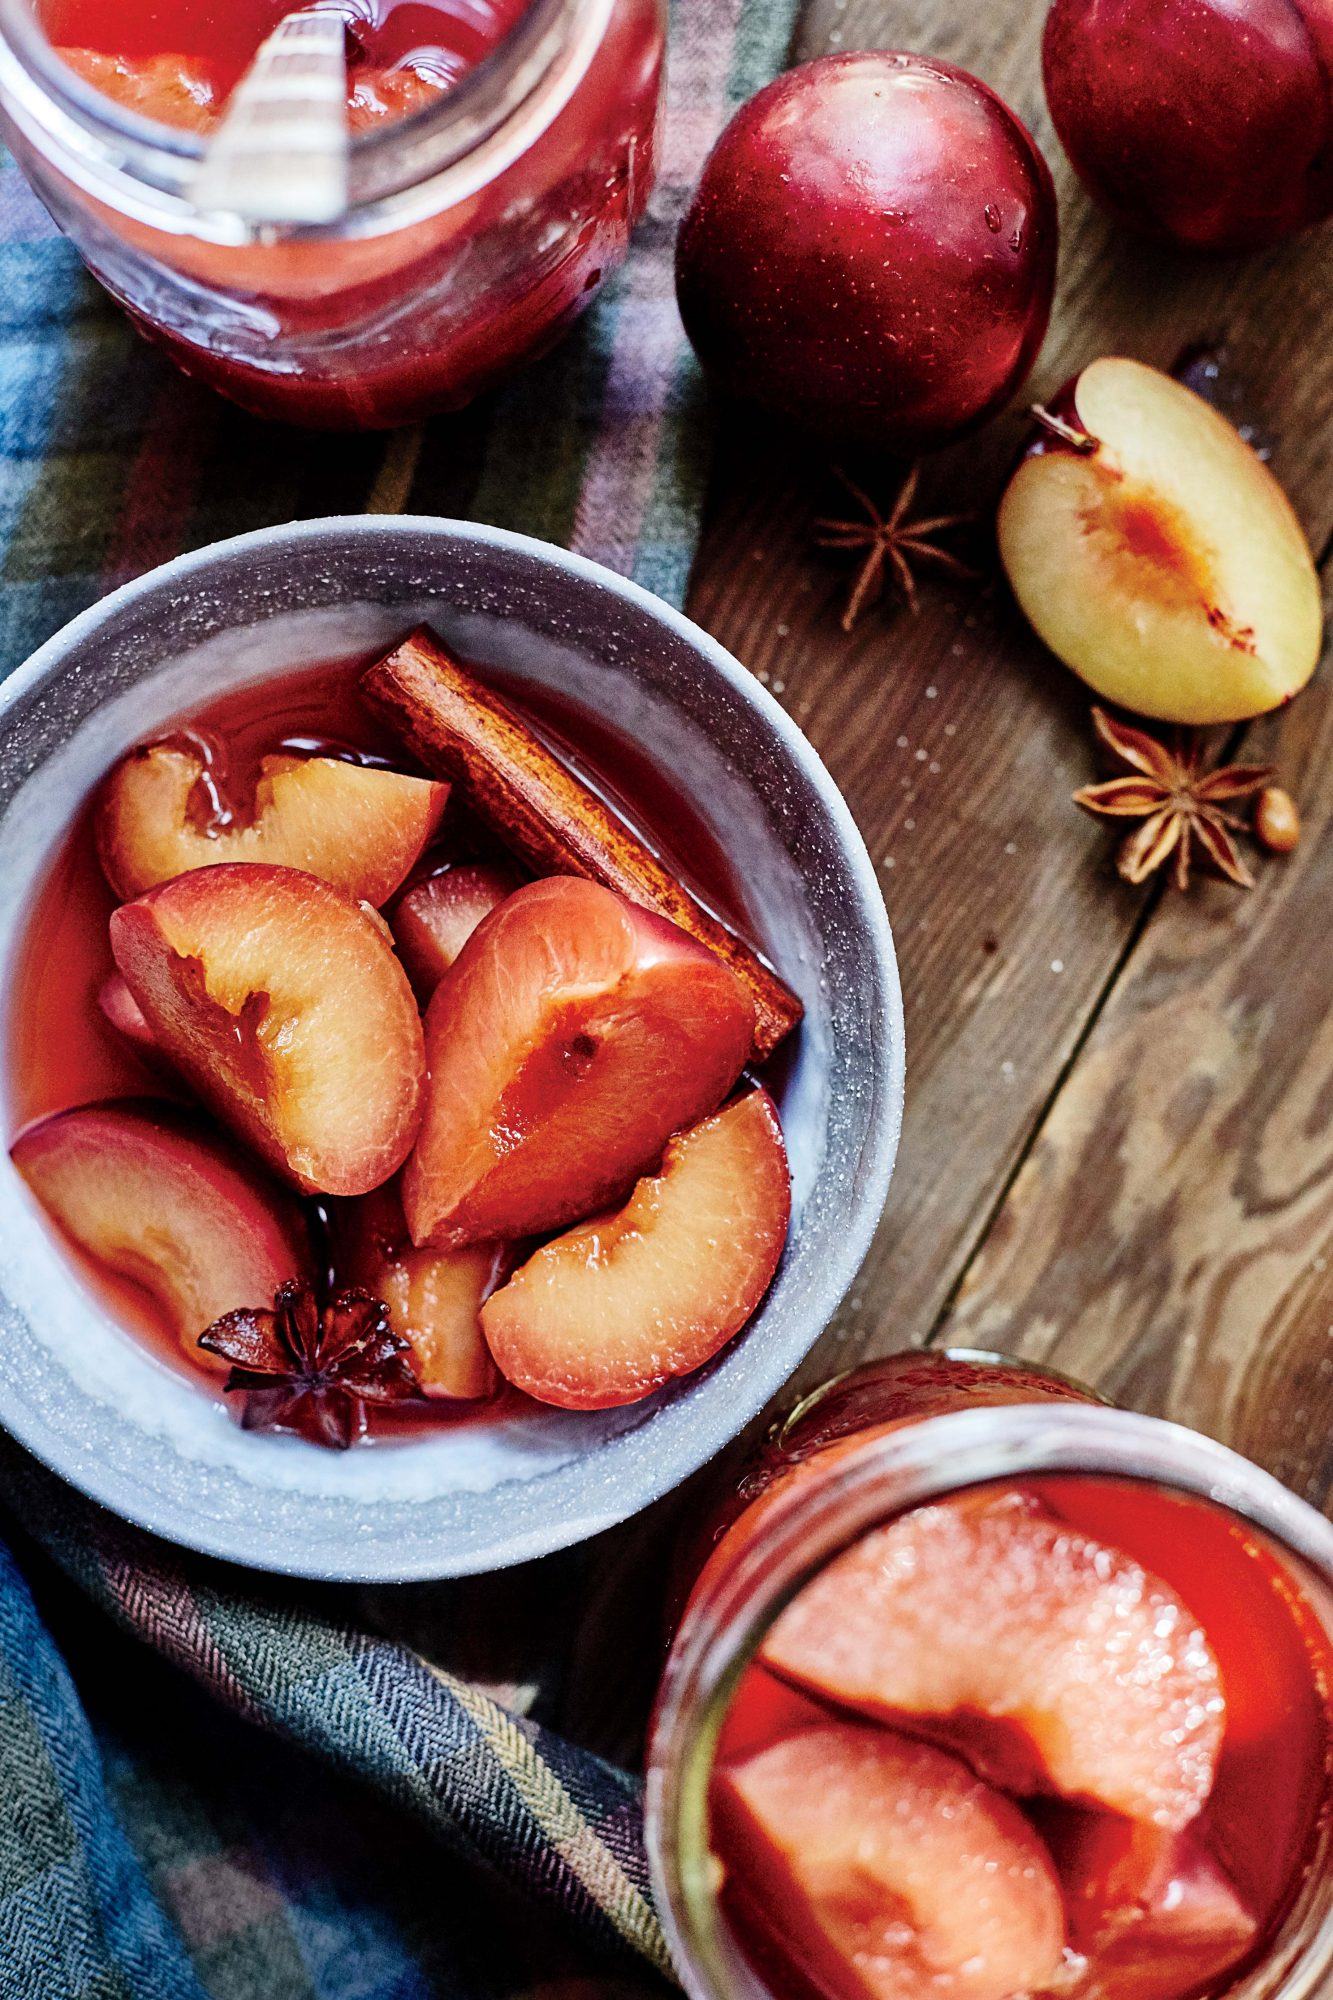 pickled plums image